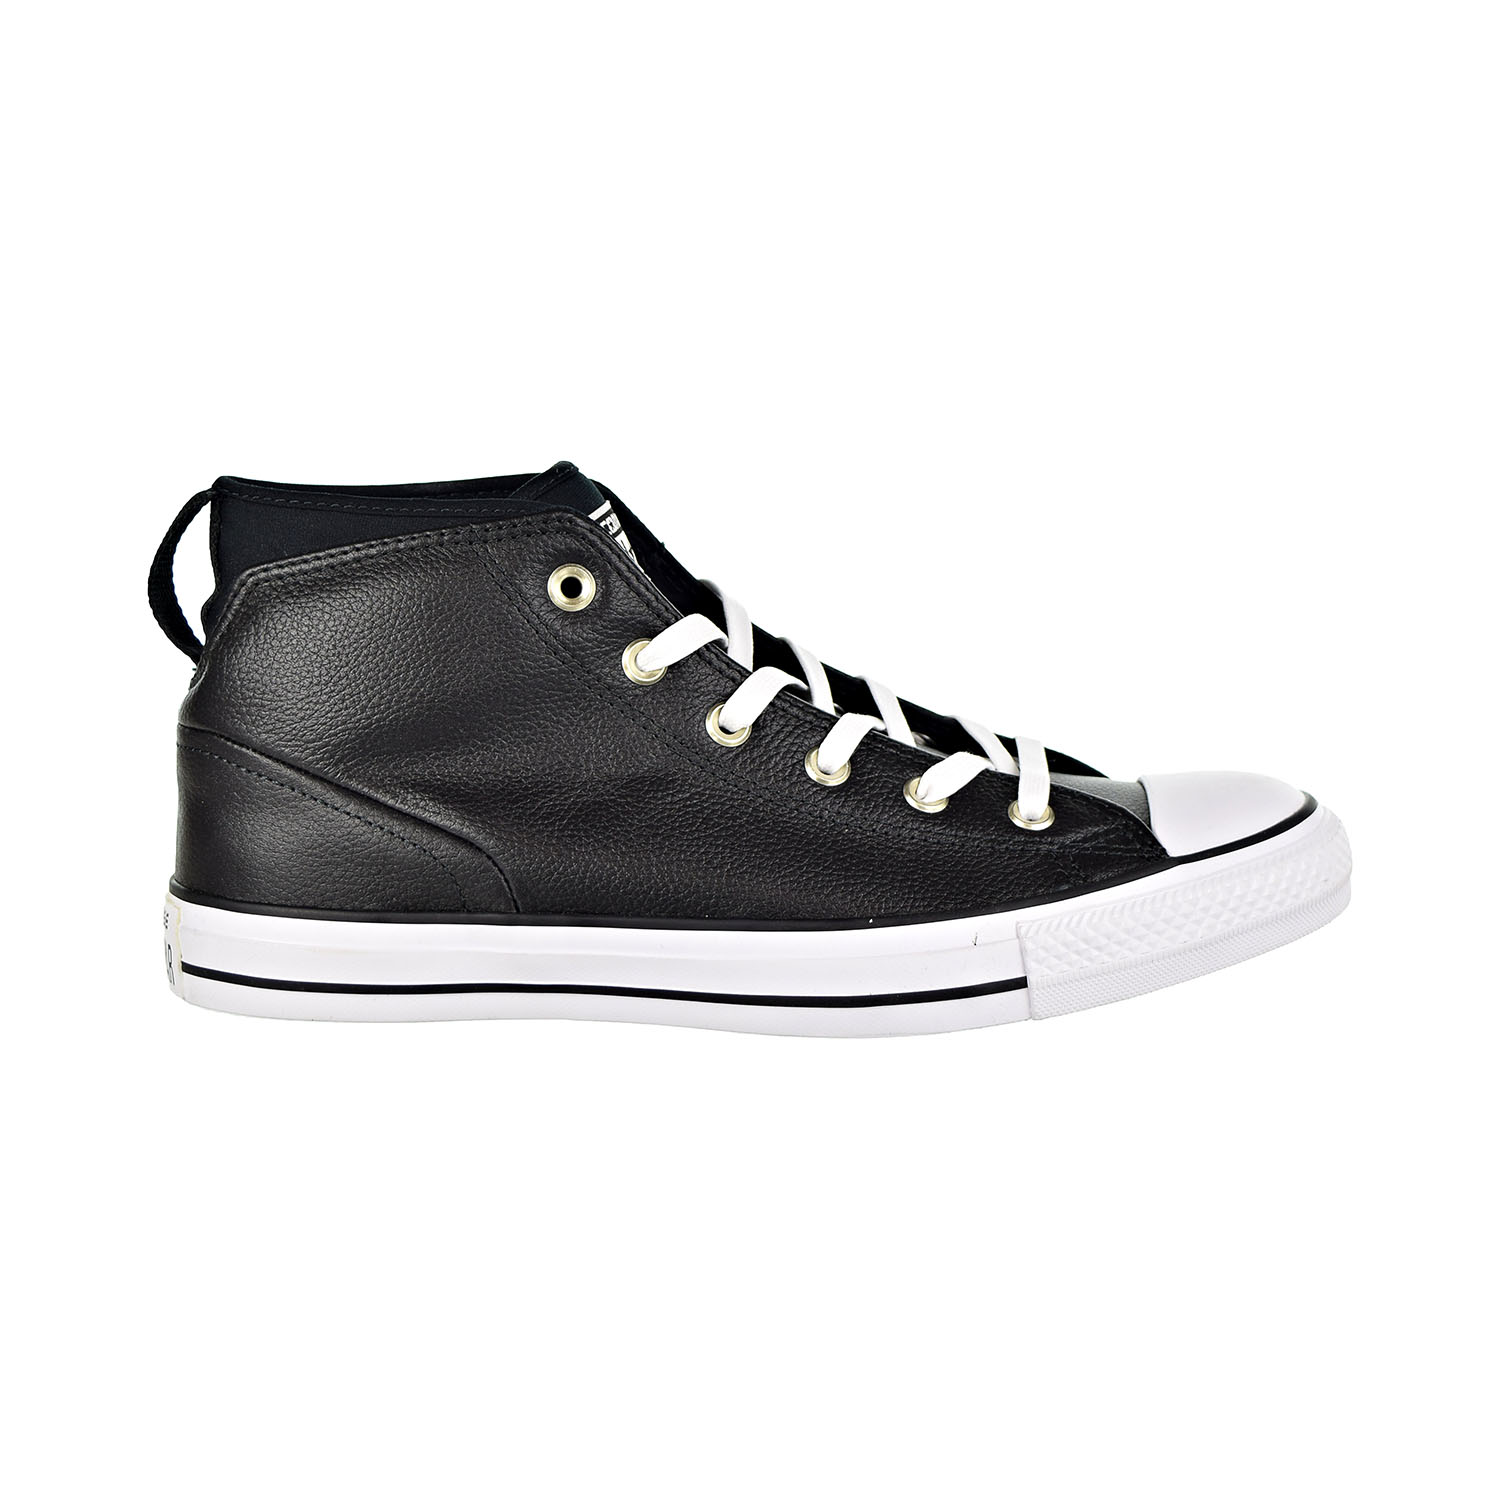 4bdf7532fb8bcd Converse Chuck Taylor All Star Syde Street Mid Men s Shoes Black White  157537c